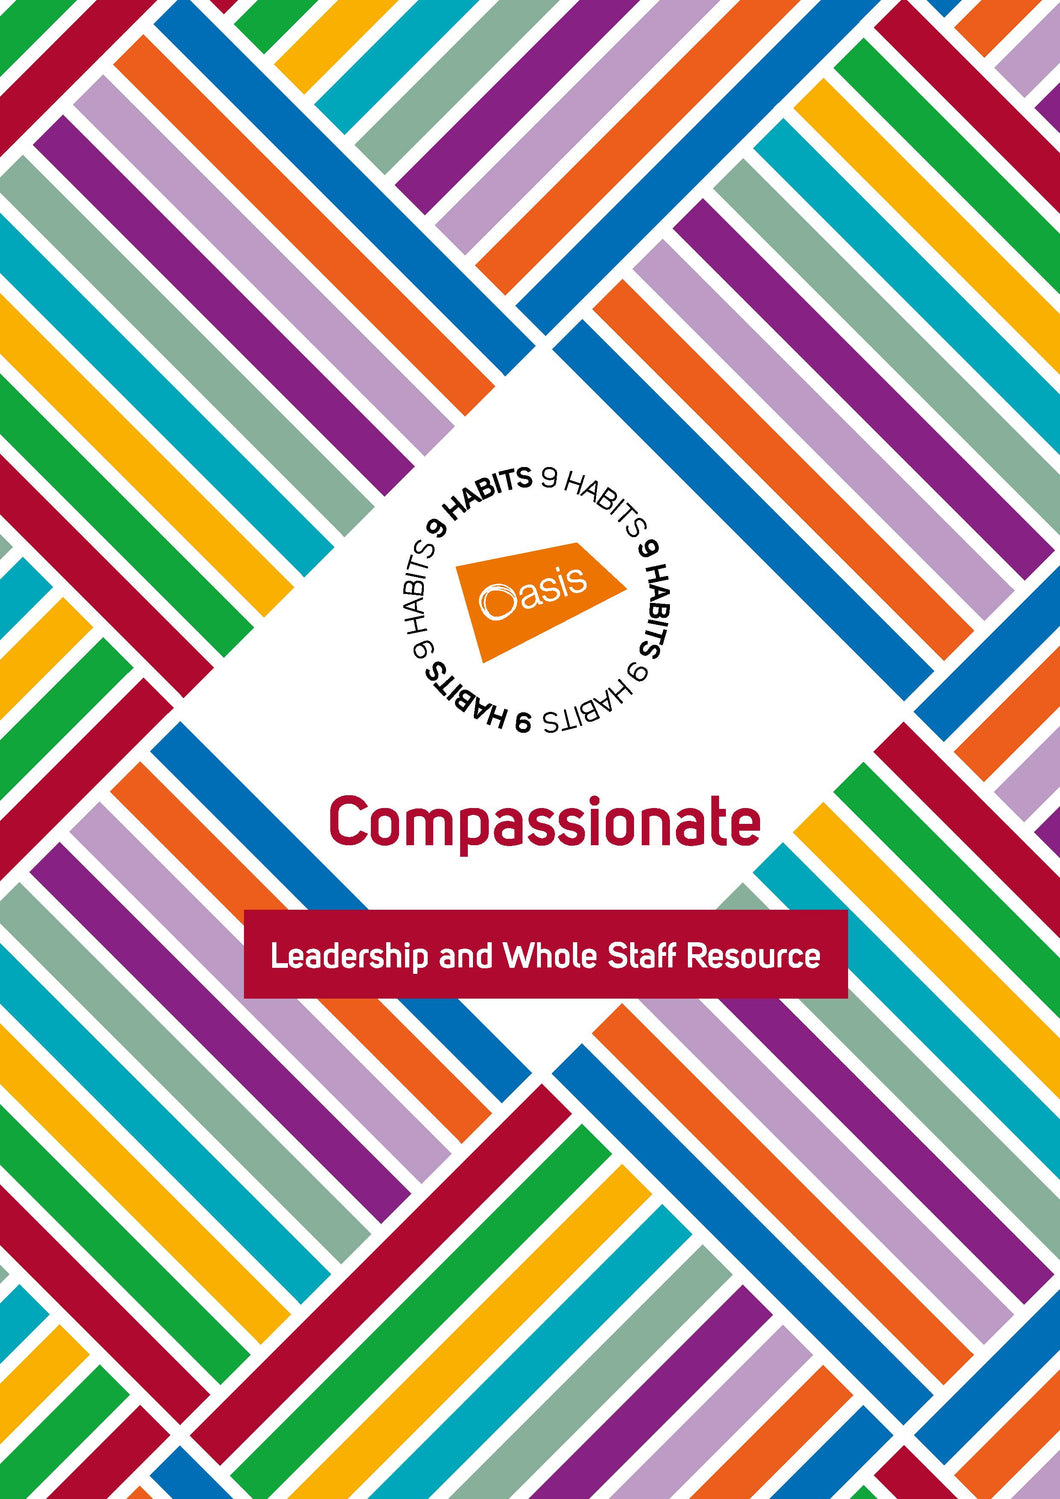 Compassionate | Leadership and Whole Staff Resource